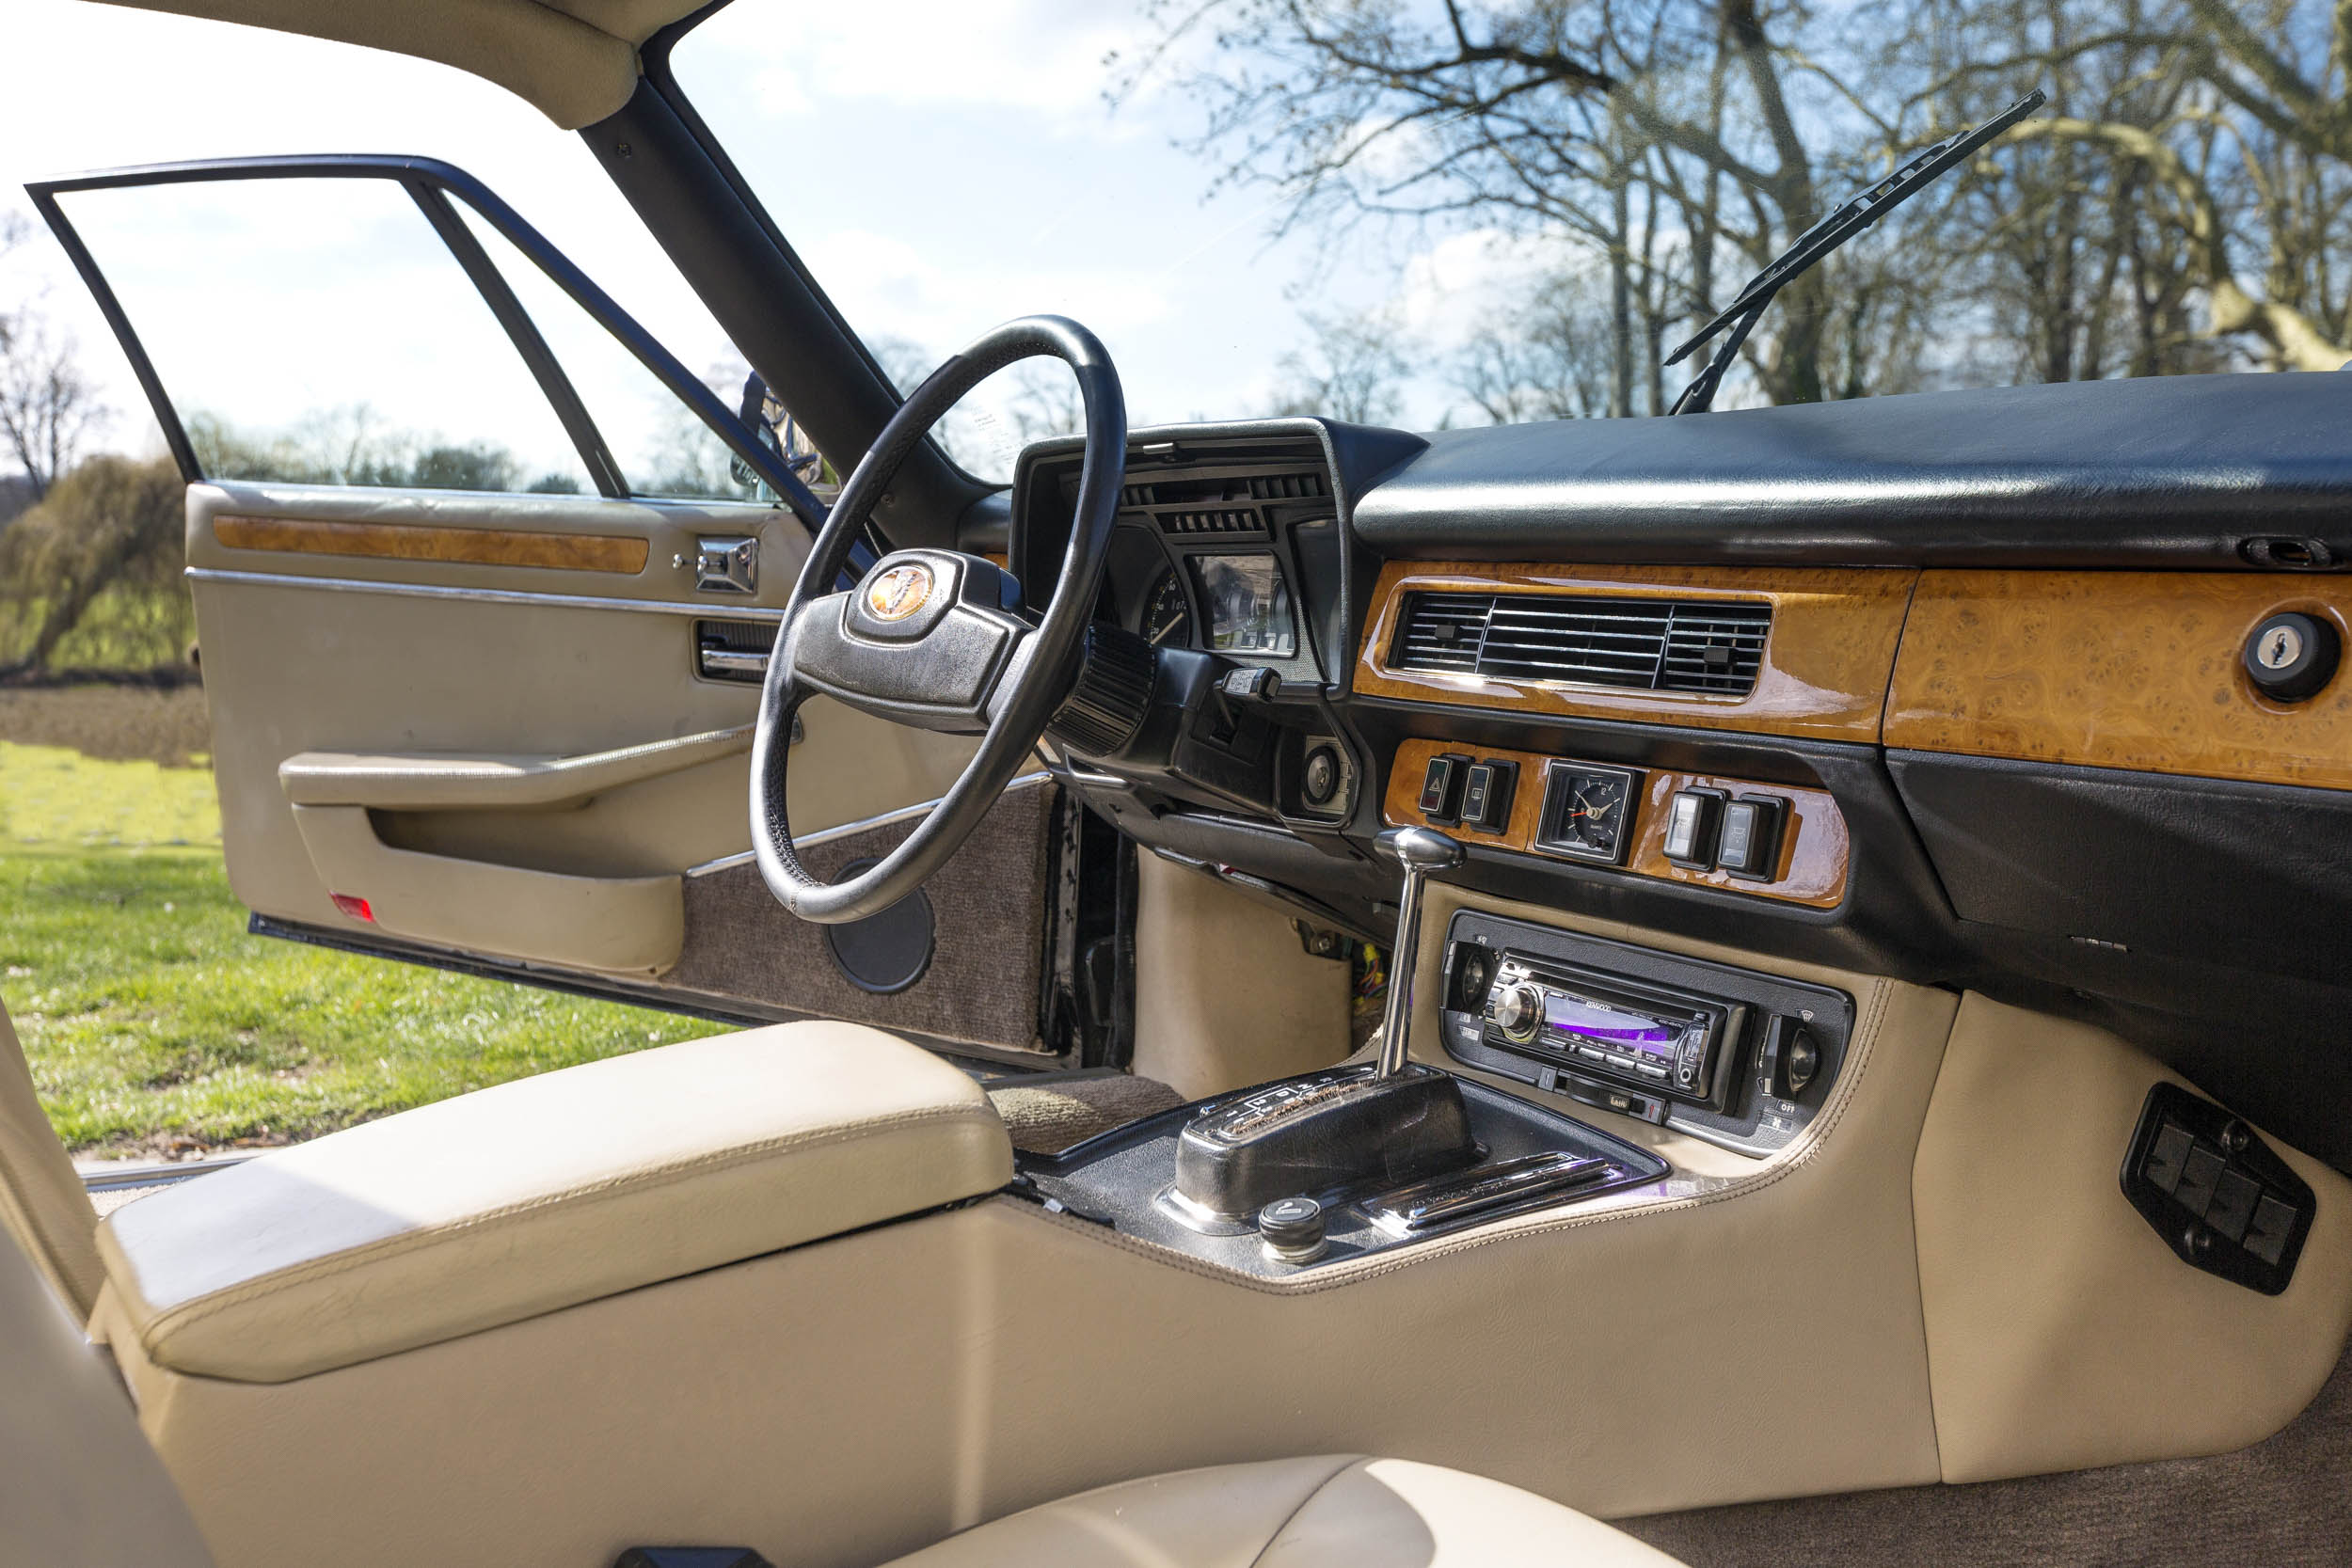 1984 Jaguar XJ-S V12 Lynx Eventer interior